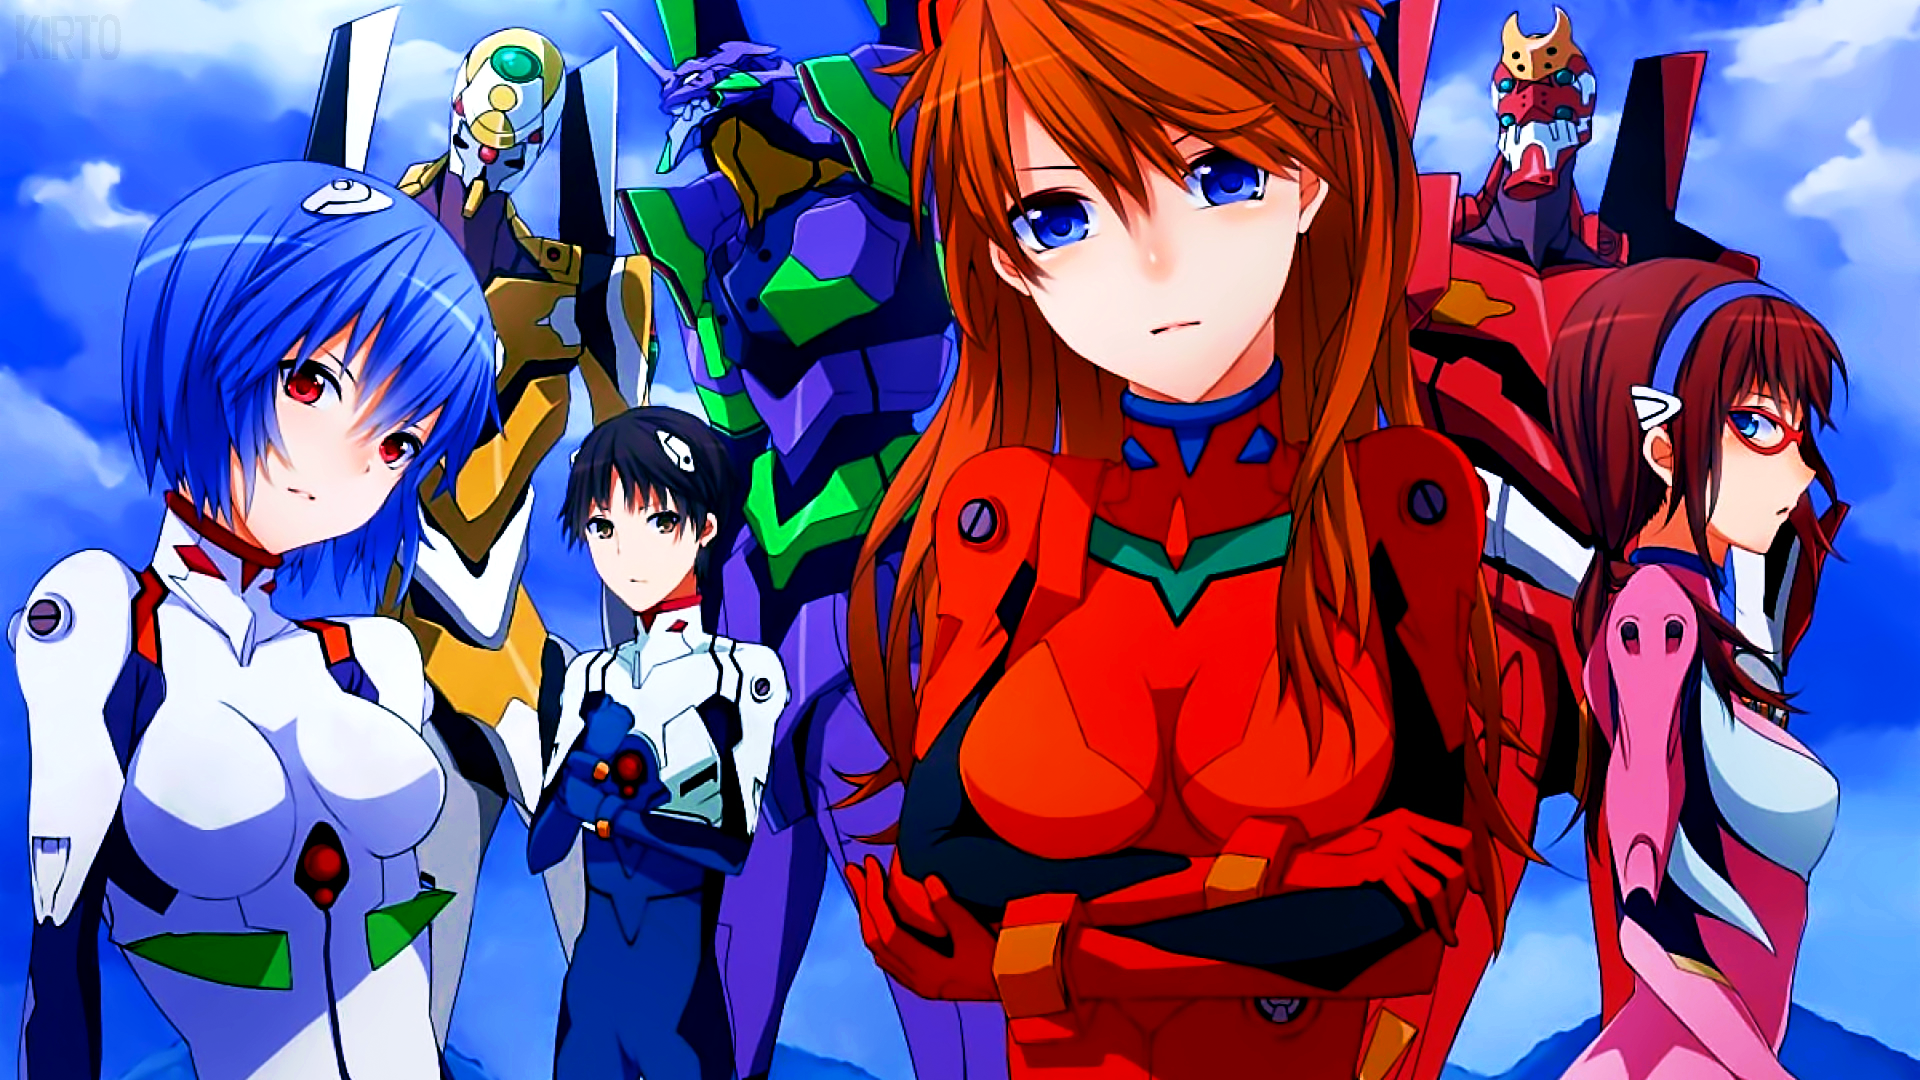 Neon Genesis Evangelion Wallpaper By Kirtofx On Deviantart